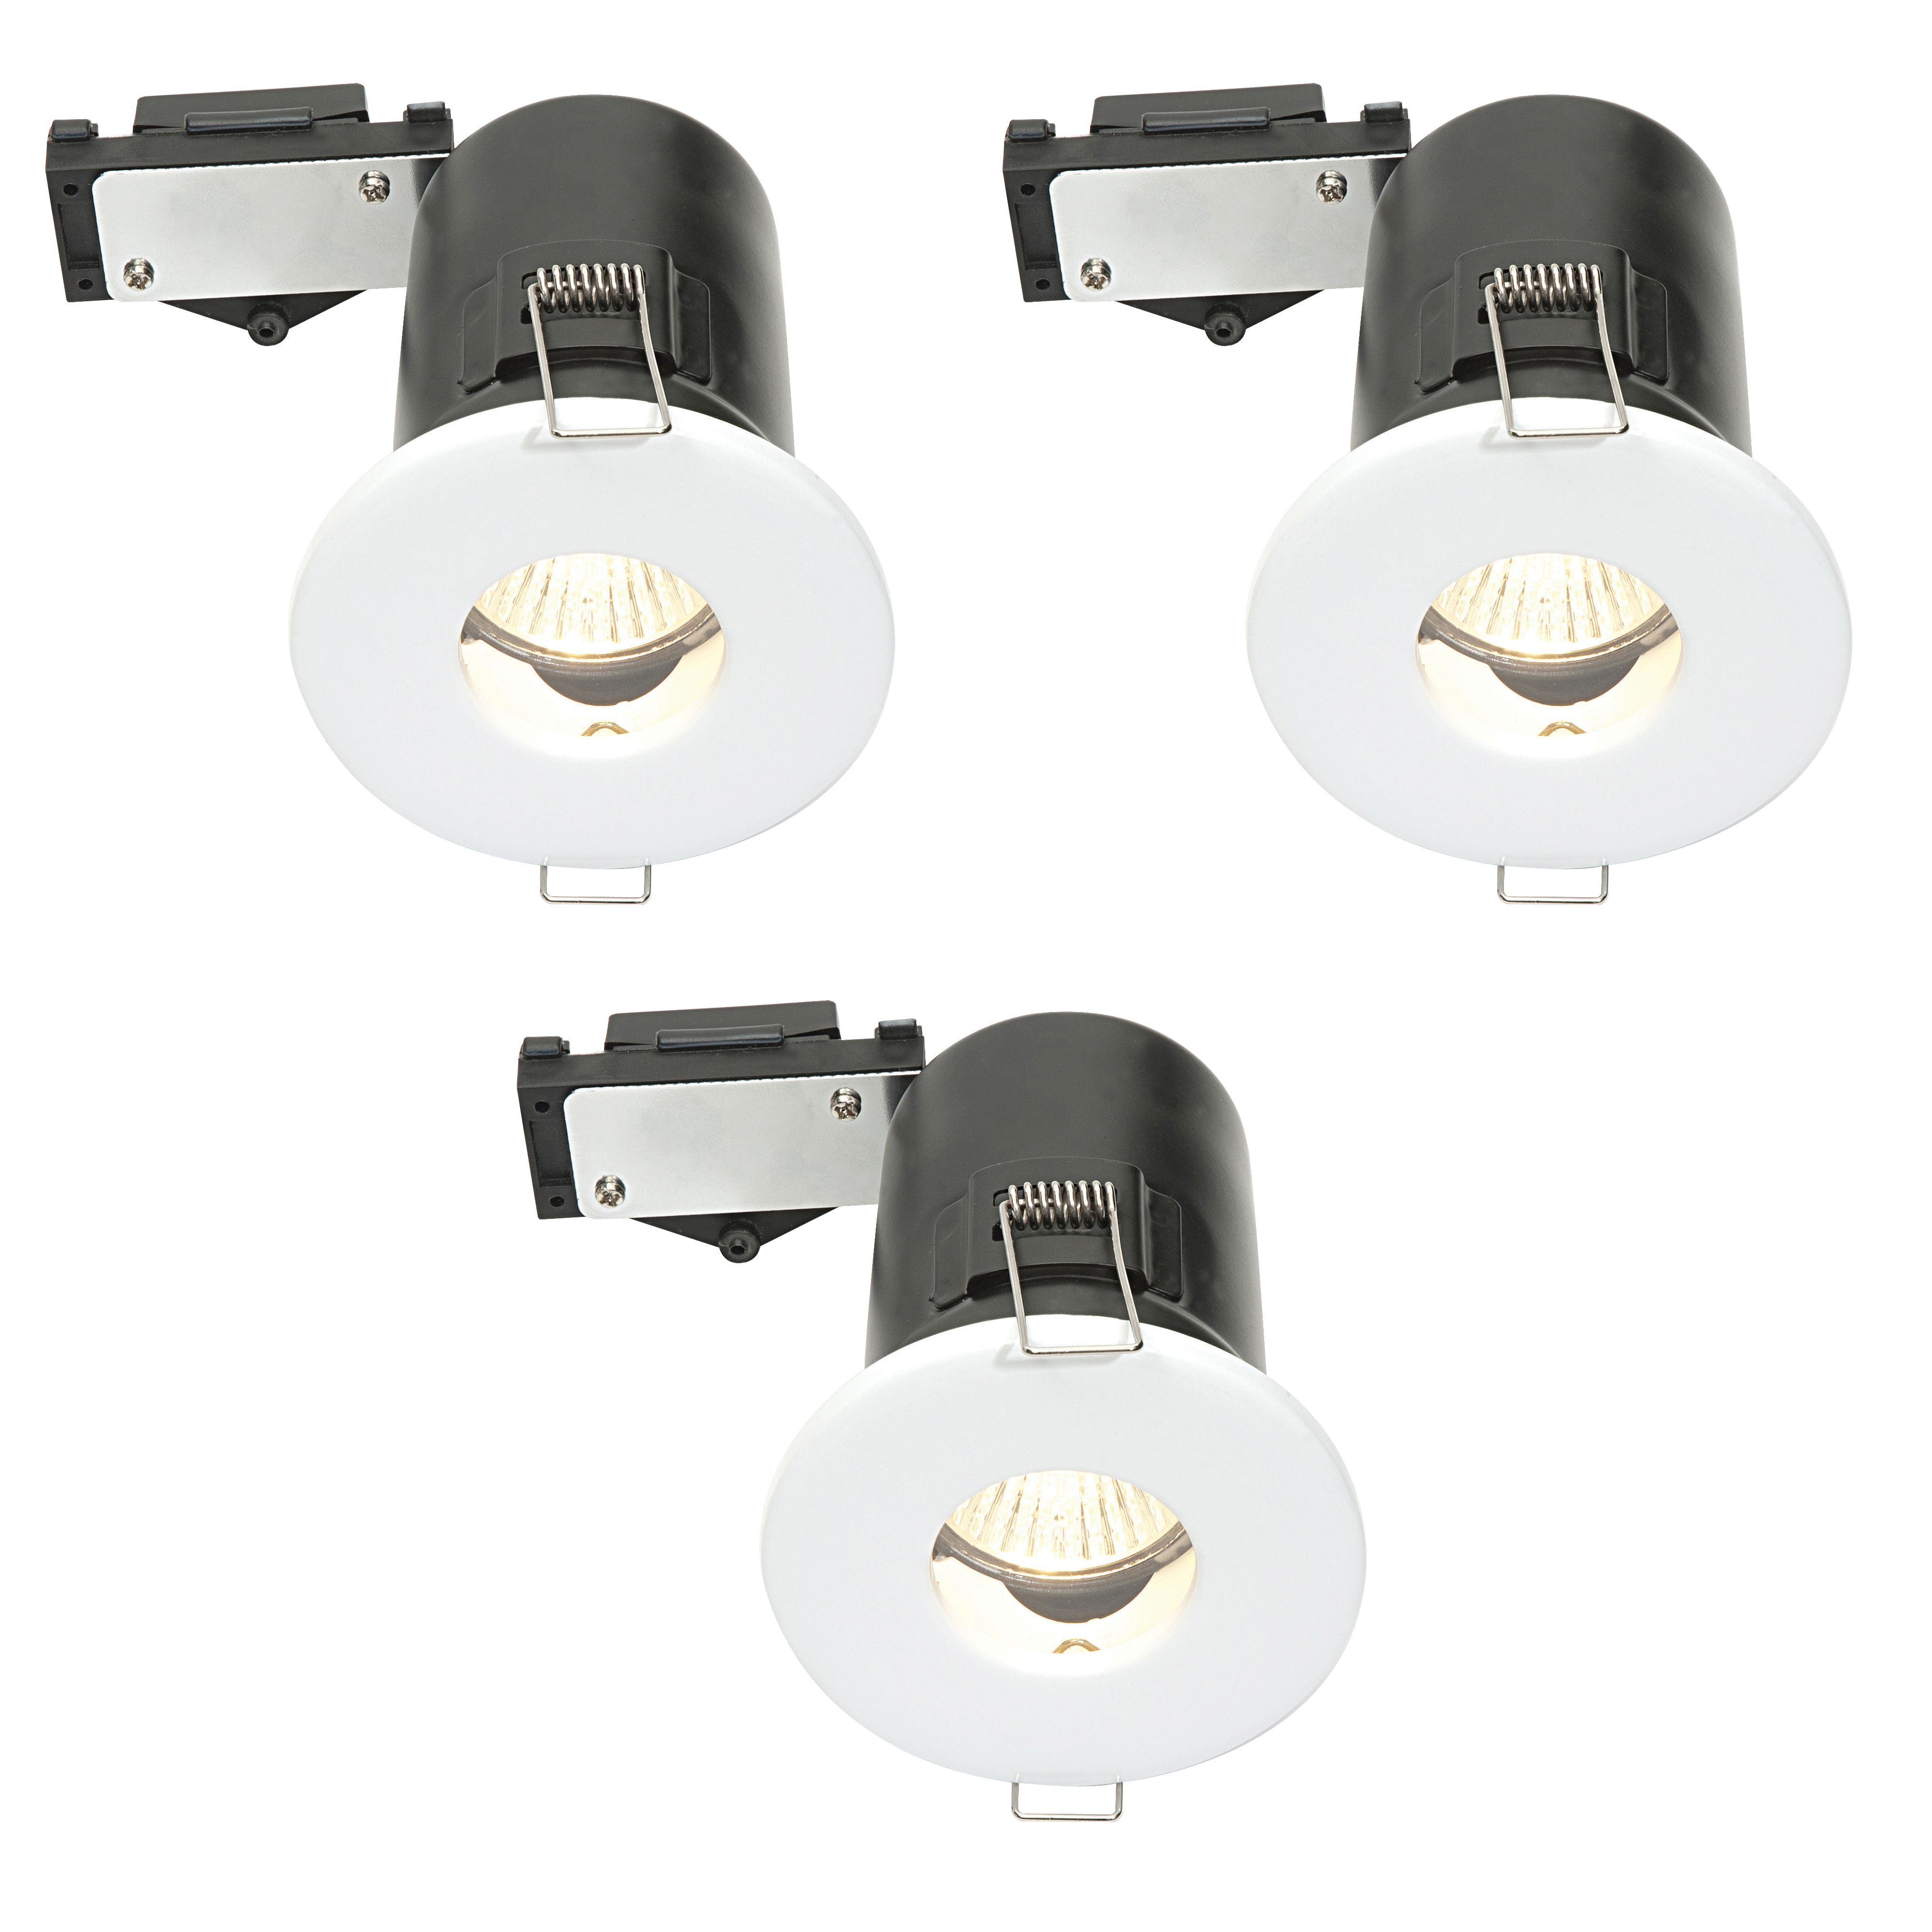 Diall White Gloss LED Fixed Downlight 3.5 W IP65, Pack Of